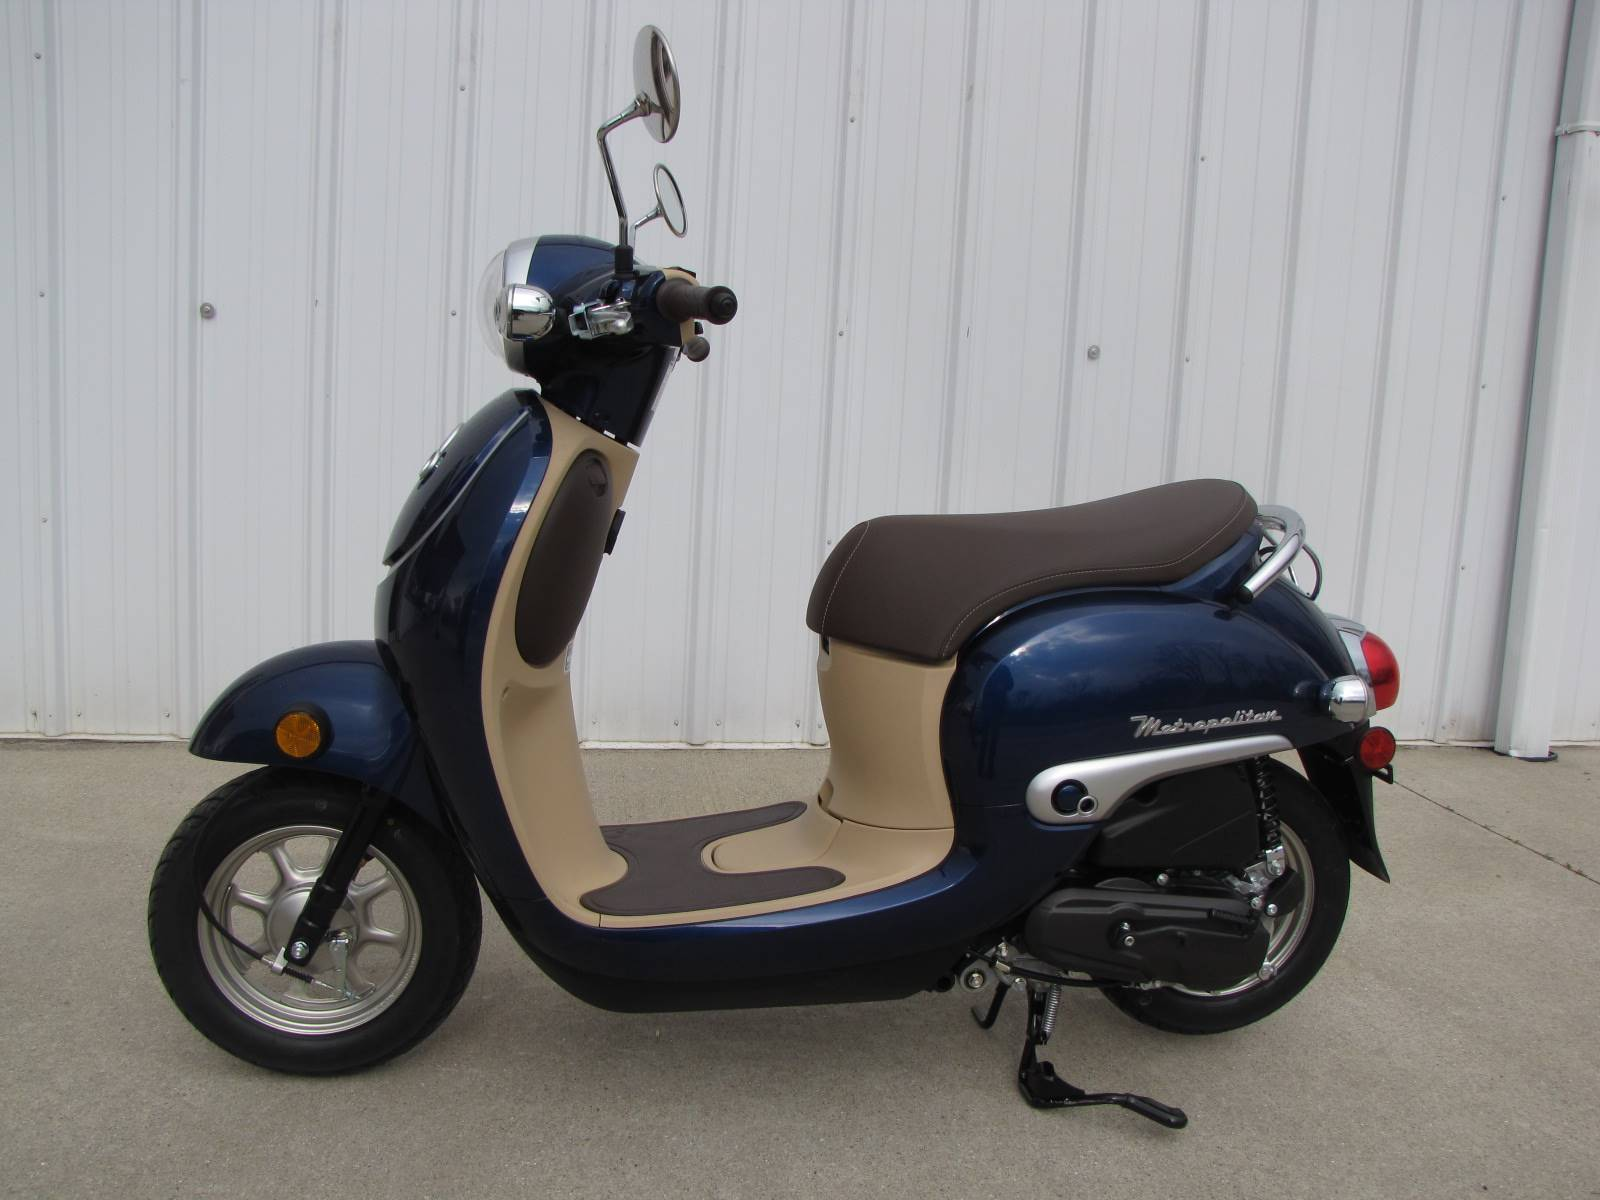 New 2018 Honda Metropolitan Scooters in Ottawa, OH | Stock Number: N/A